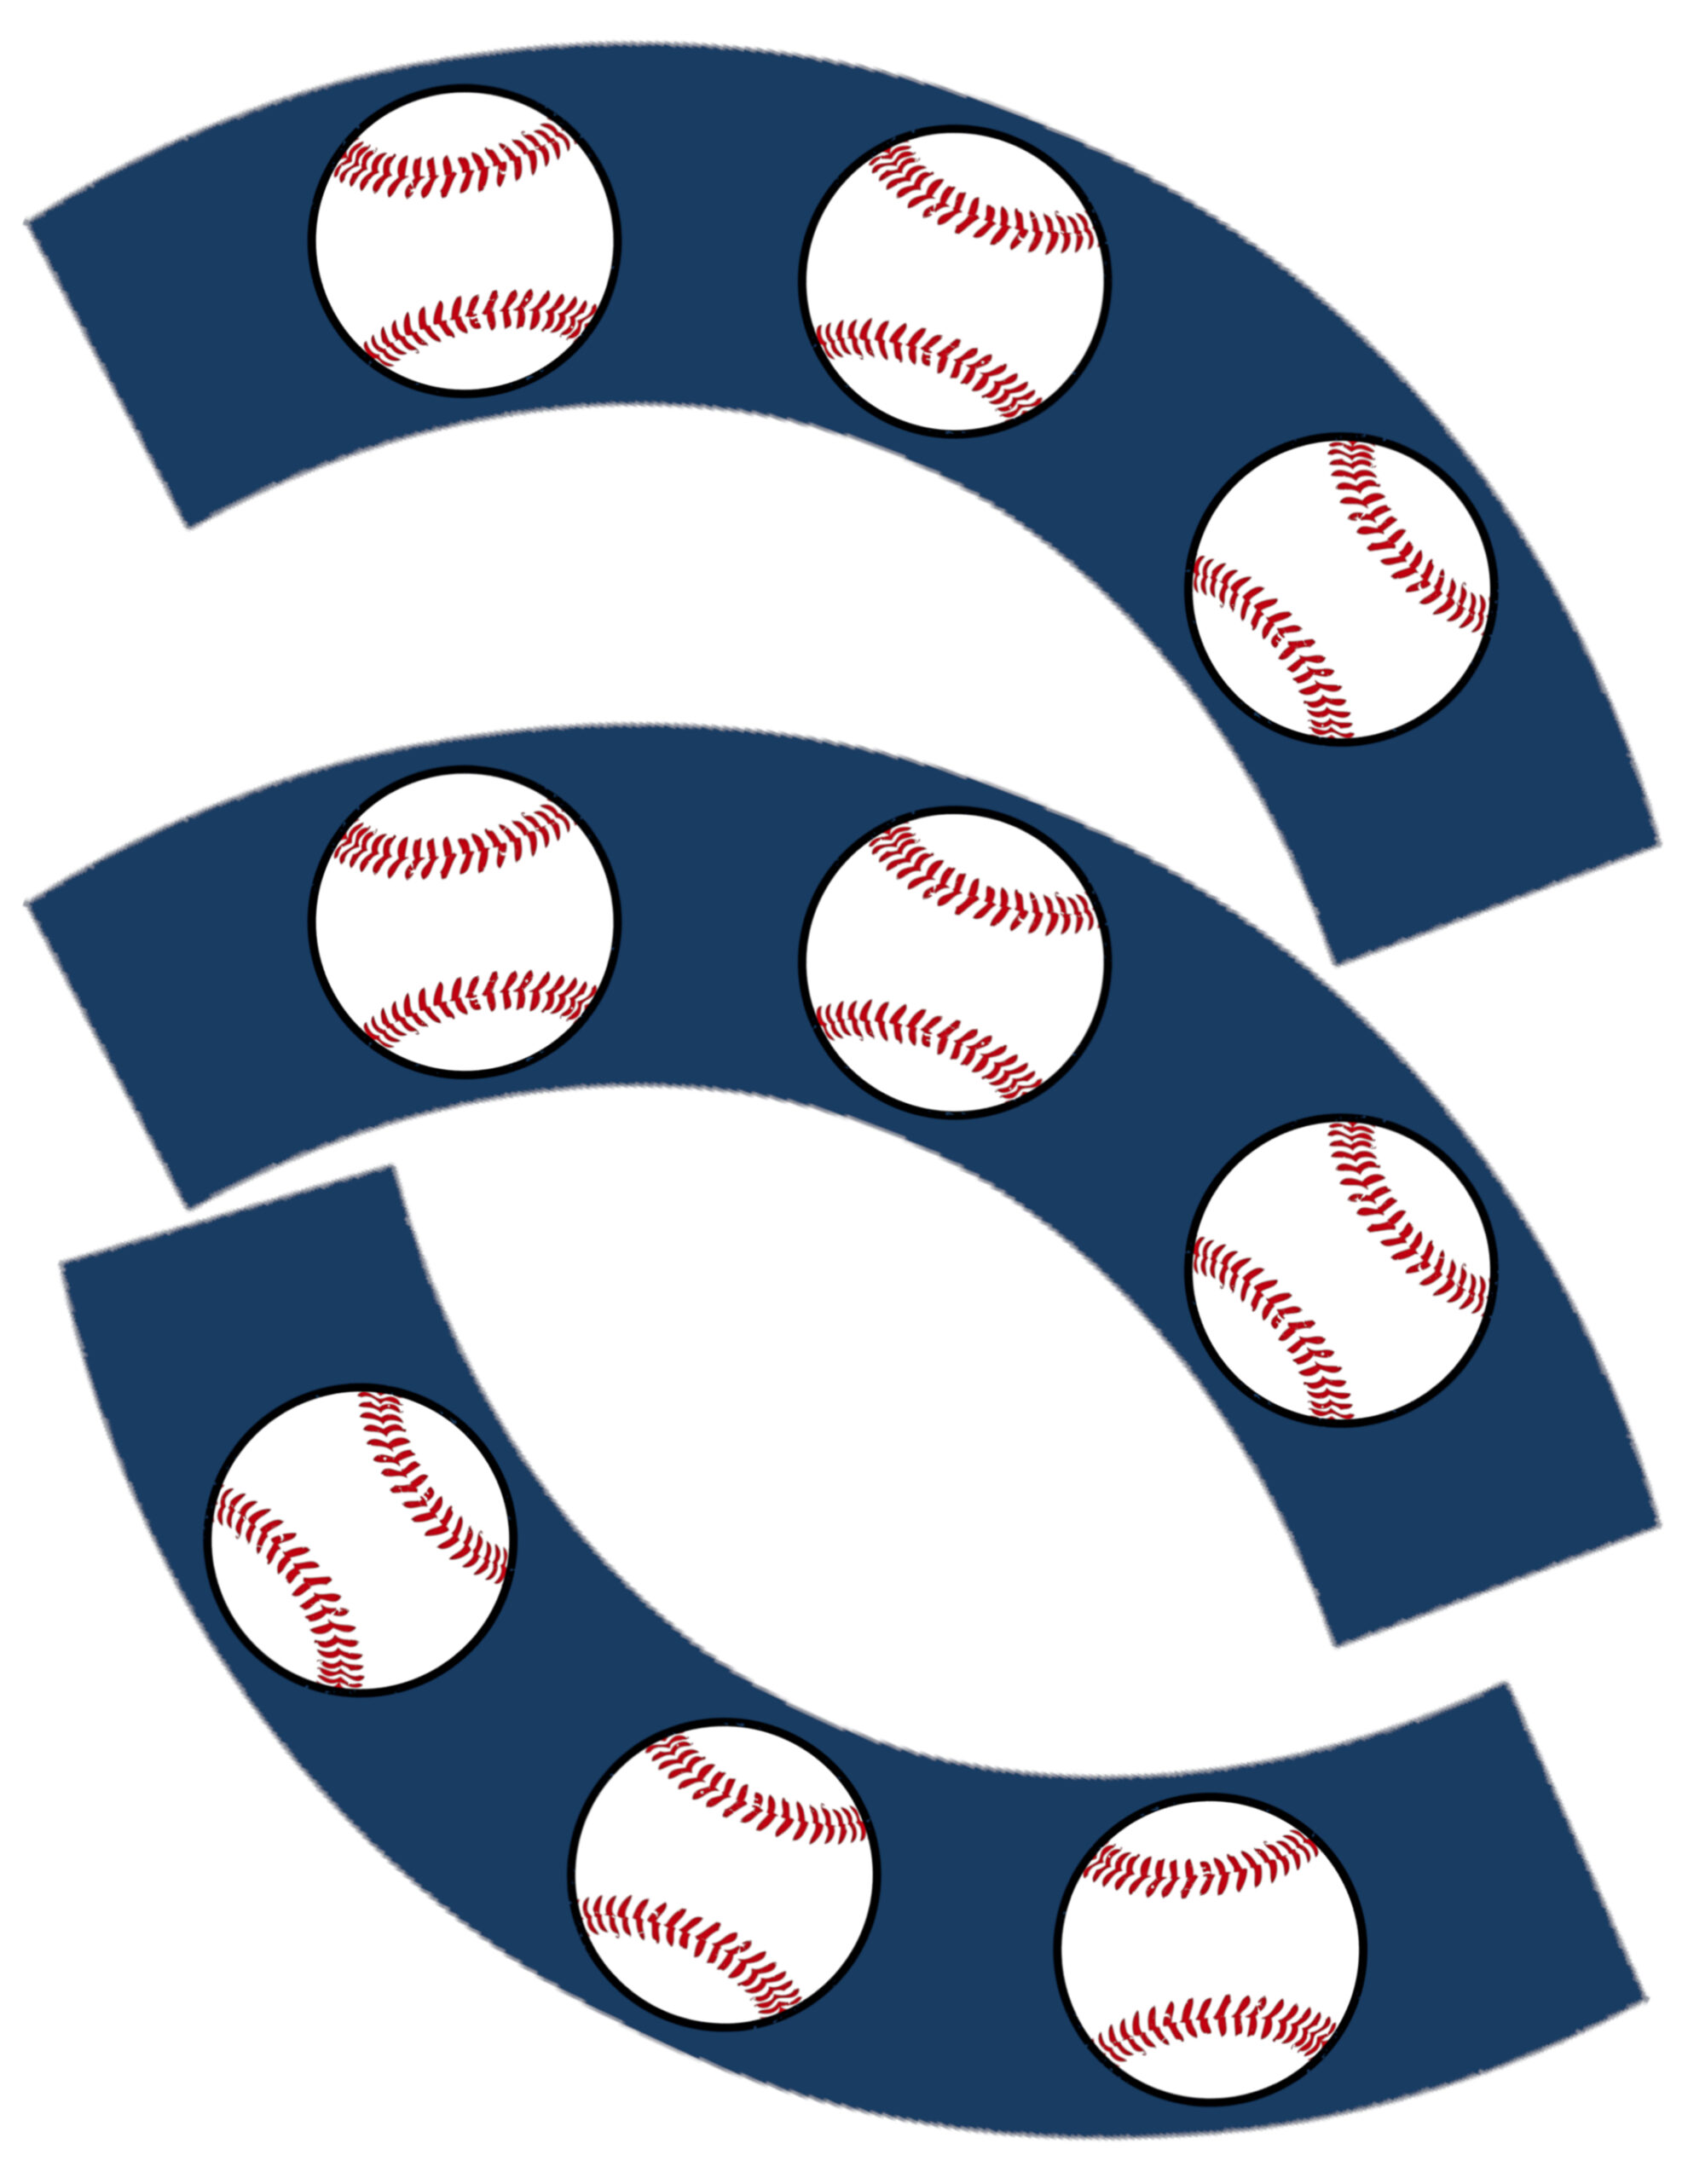 Baseball Cupcake Wrappers Free Printable - Paper Trail Design